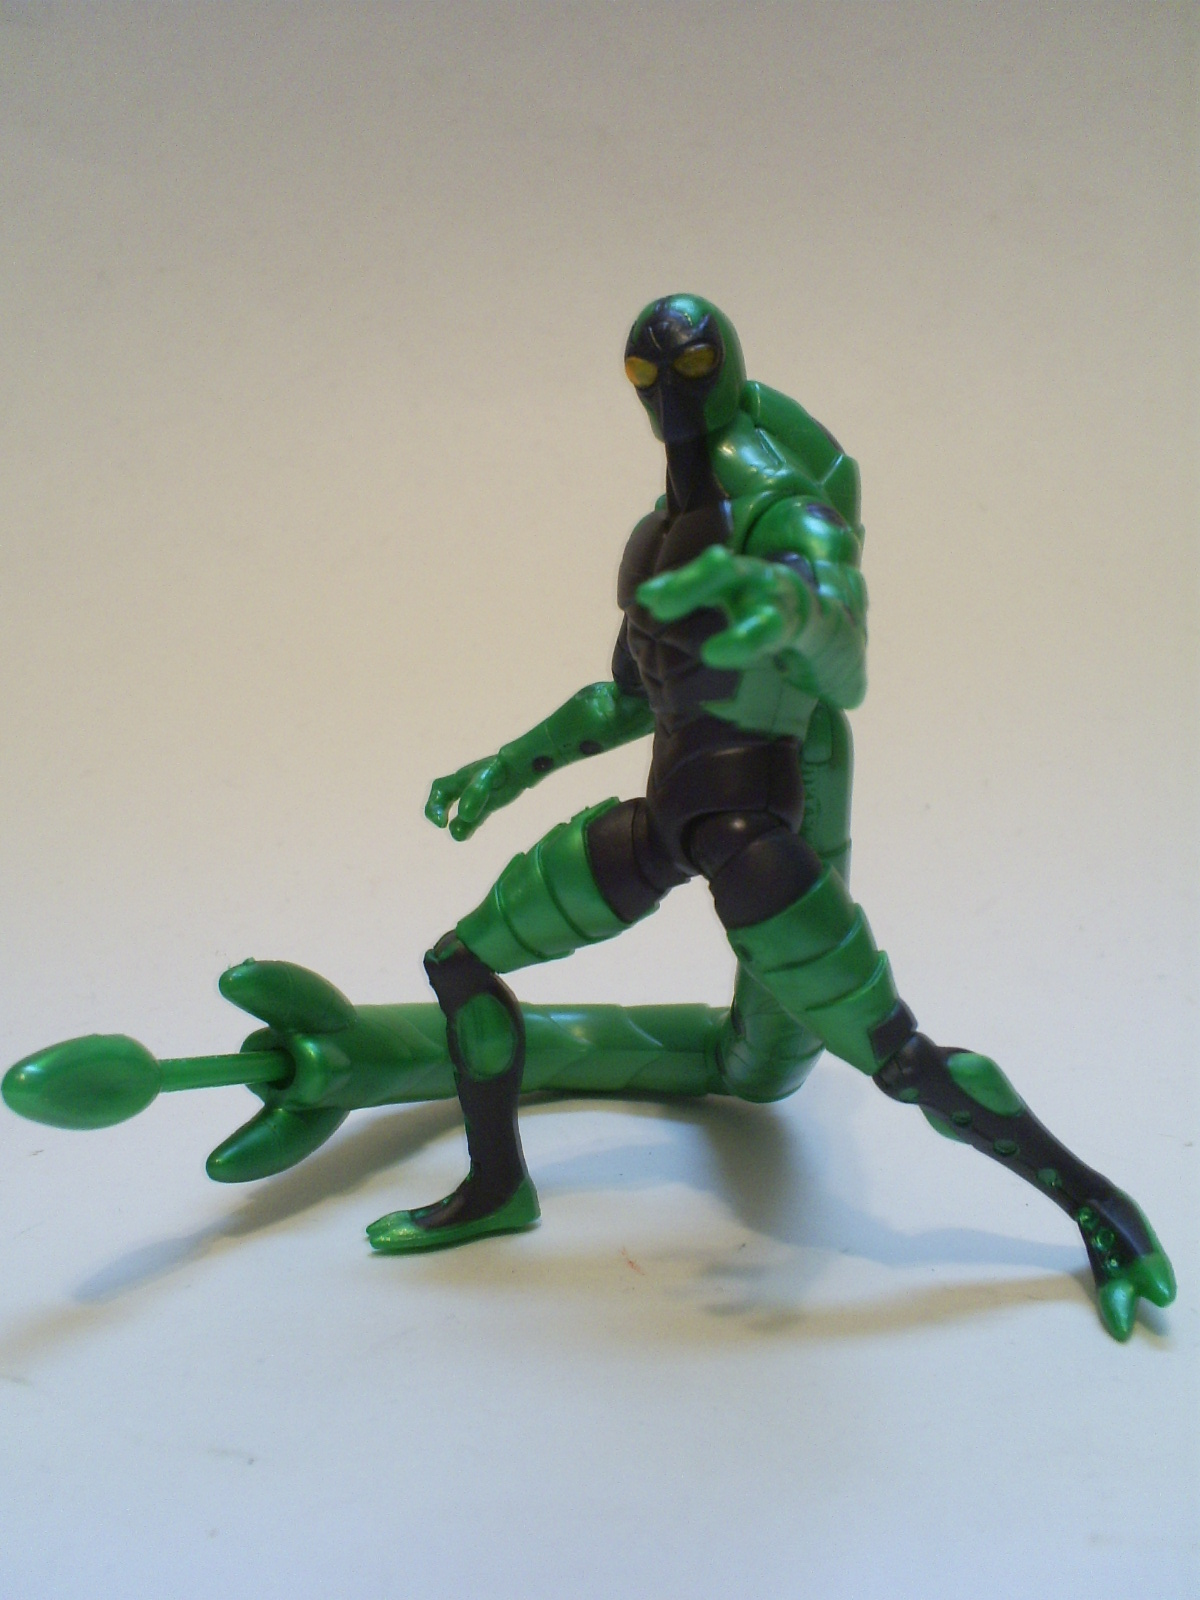 That Figures: REVIEW: Spider-Man's Stinger Strike Scorpion